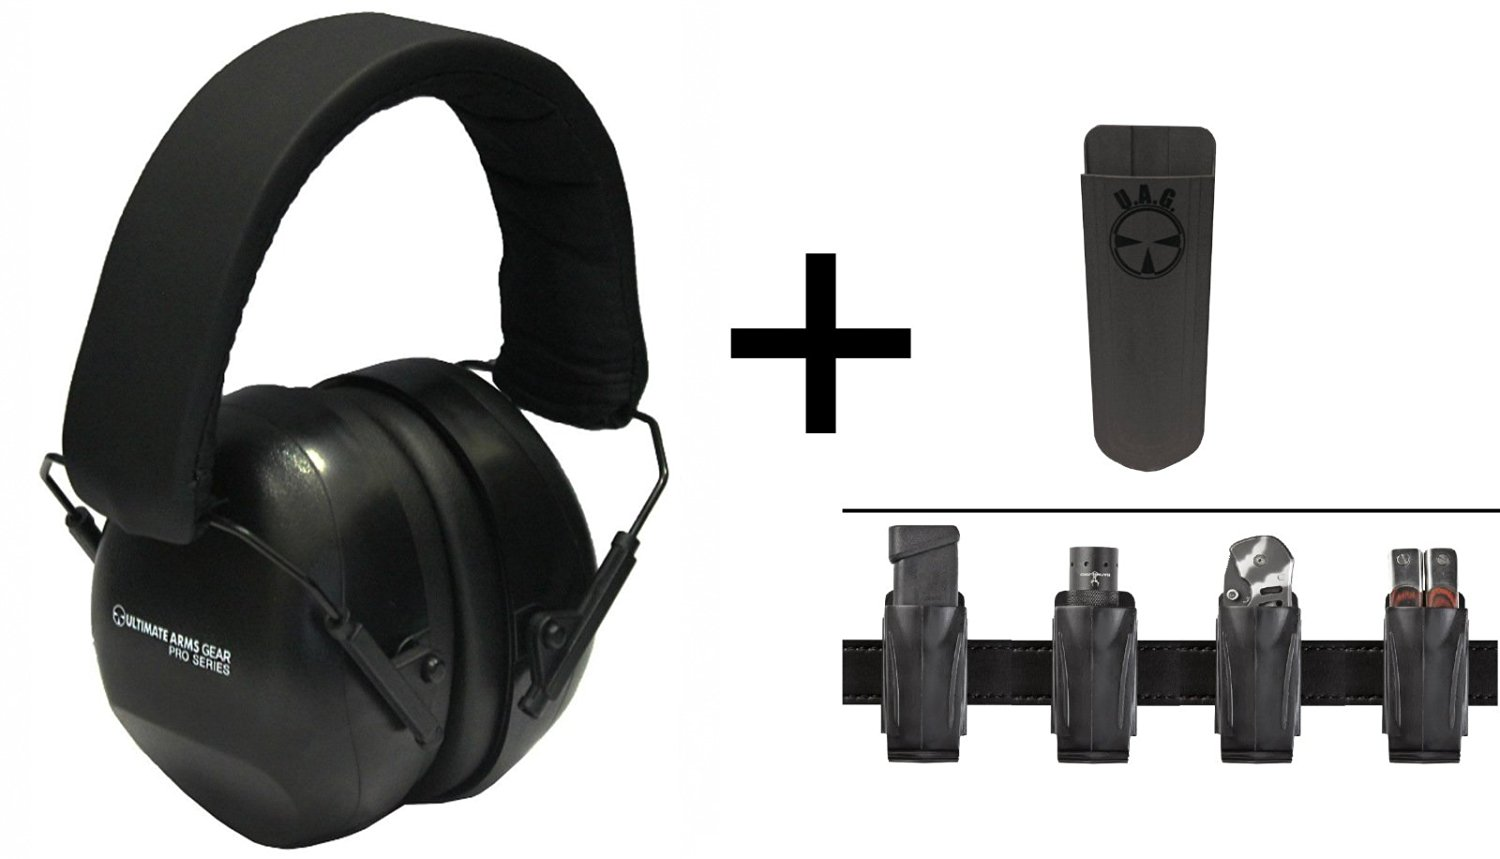 Ultimate Arms Gear 26db NRR Noise Reduction Suppressor Earmuffs + Universal Multi Purpose Accordion Flexible Belt Clip Pouch Holder Fits Pistol Magazines, Flashlights, Knives, and Multi-Tools, Grey